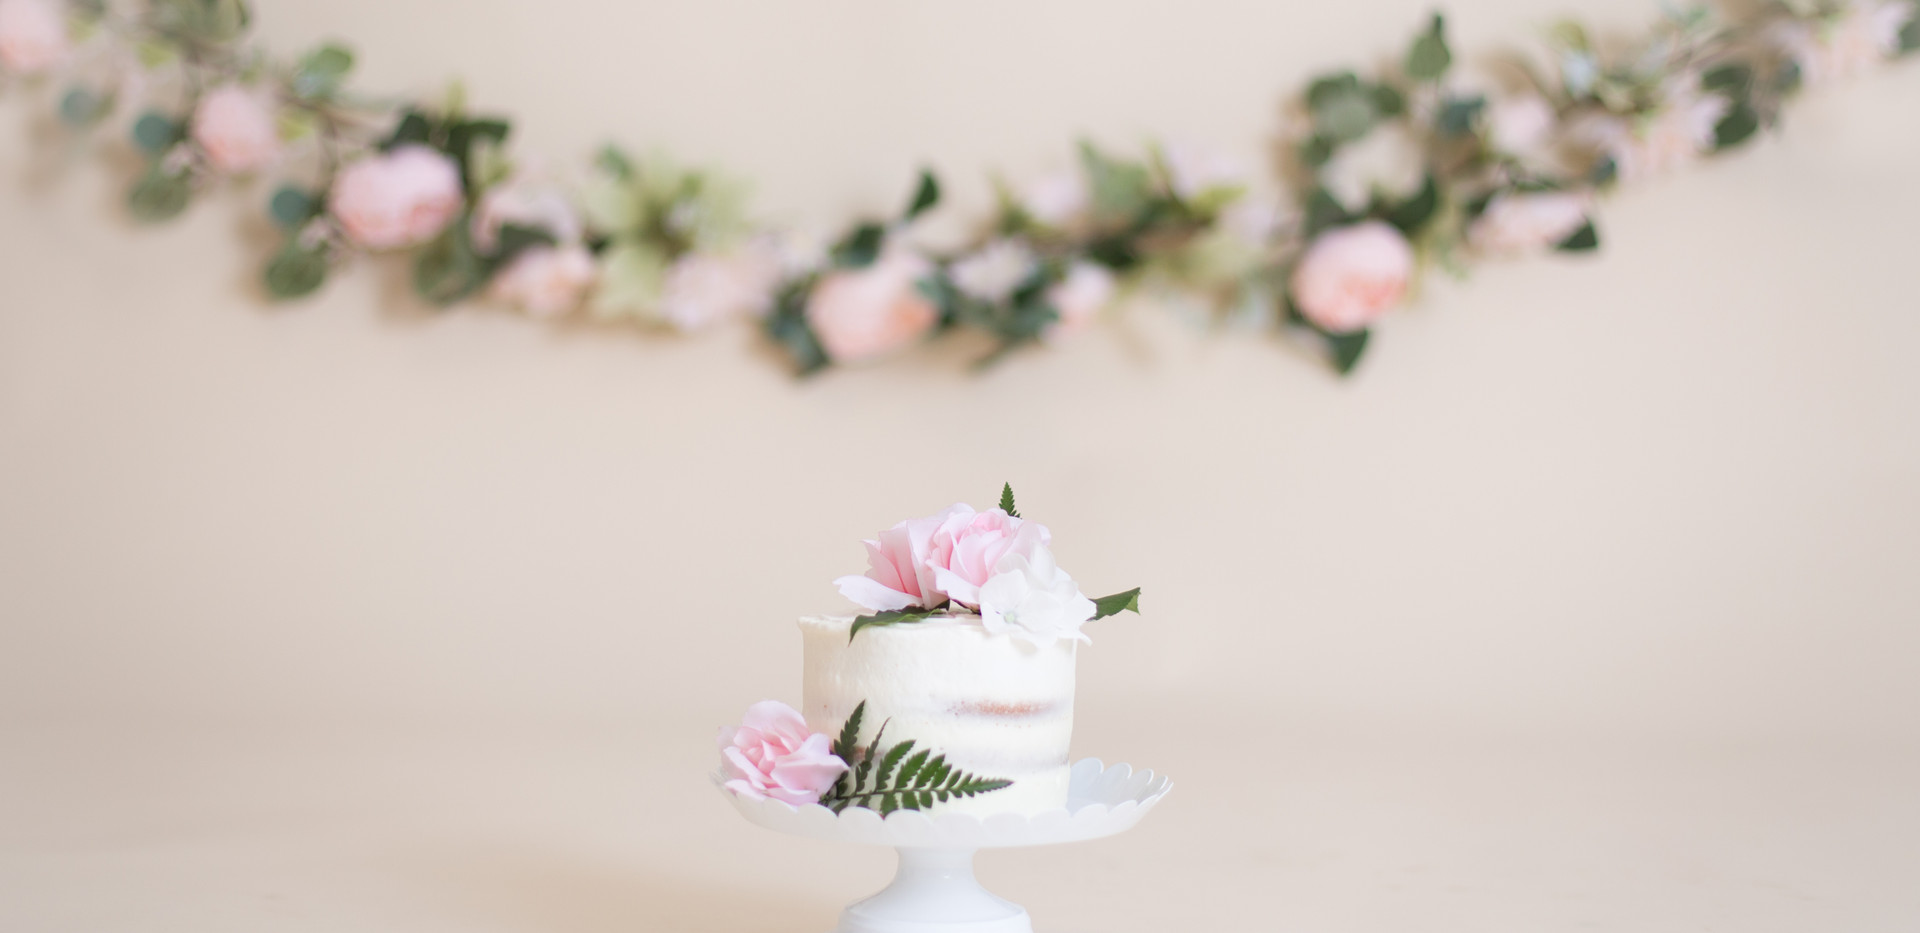 naked cake with flowers, chattanooga cake smash